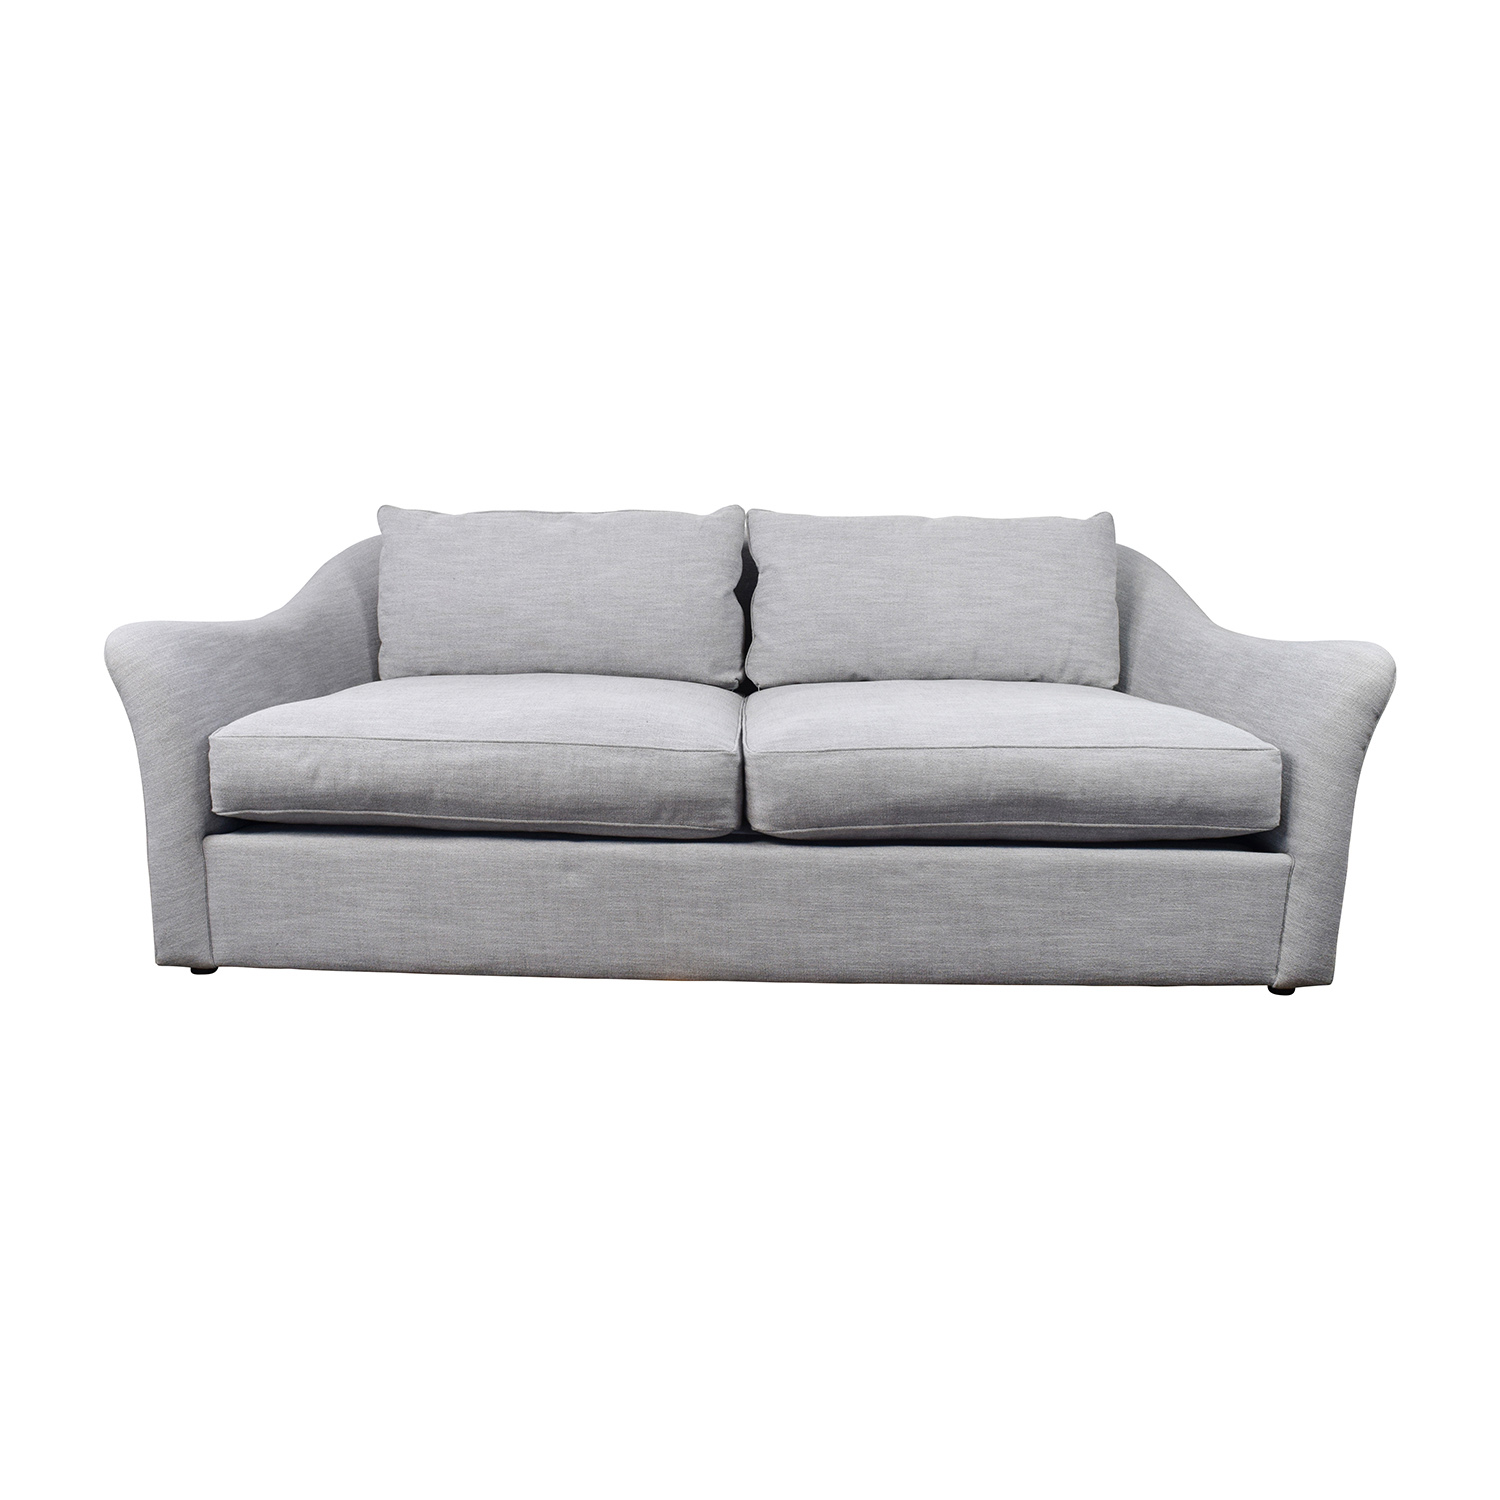 west elm sofa sleeper king juicy burger chattanooga tn delaney dhp multiple colors